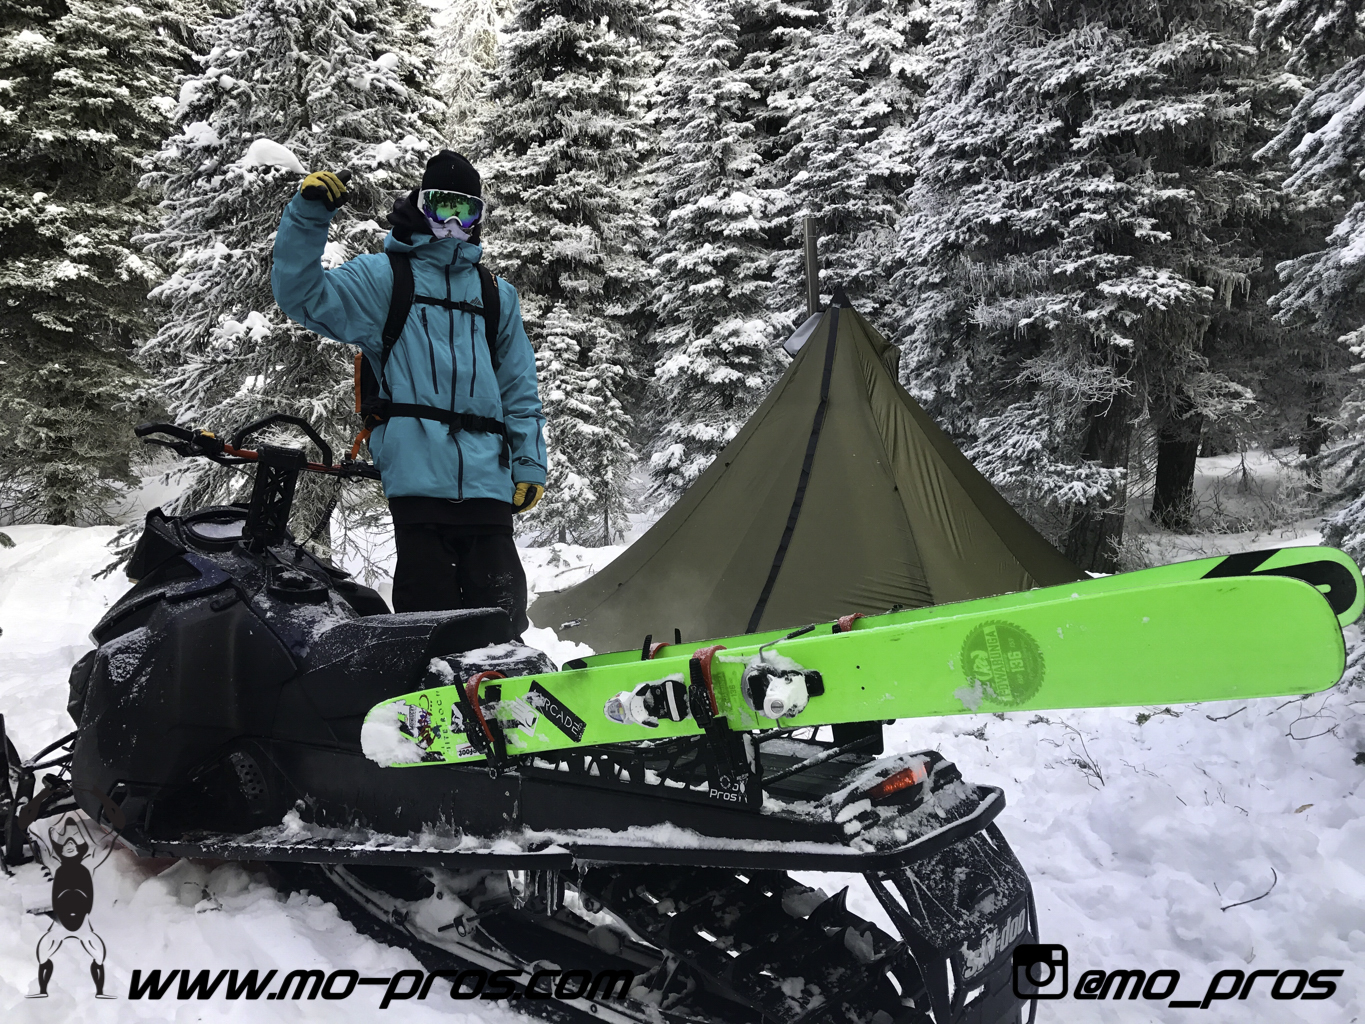 80_Gear_Gun Rack_LinQ Snowboard Ski_Snowbike_Timbersled Rack_Tsaina Rack_CFR rack_Cheetah Factory Racing_Snowboard rack_snowboard_snowmobile bag_Snowmobile_timbersled bag_gas Rack_Ski_Snowbike_Snowbo.jpg